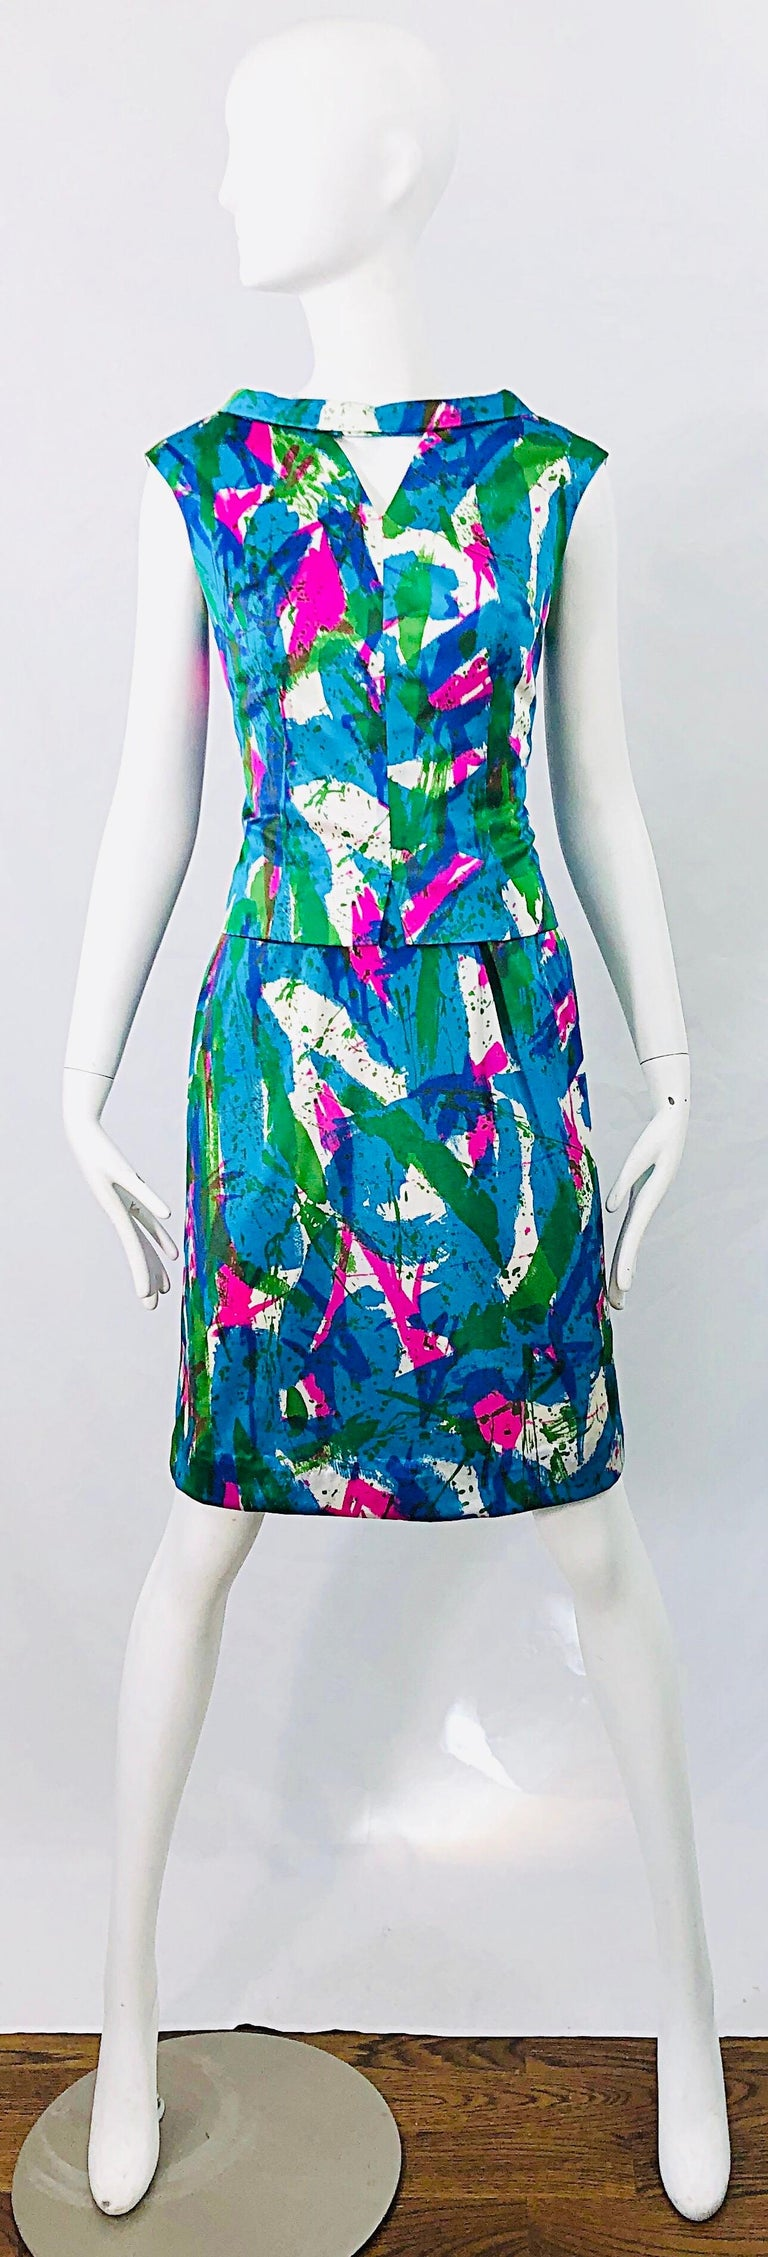 Chic 1960s Neon Abstract Print Two Piece Vintage 60s Sheath Dress + Top Blouse  For Sale 13